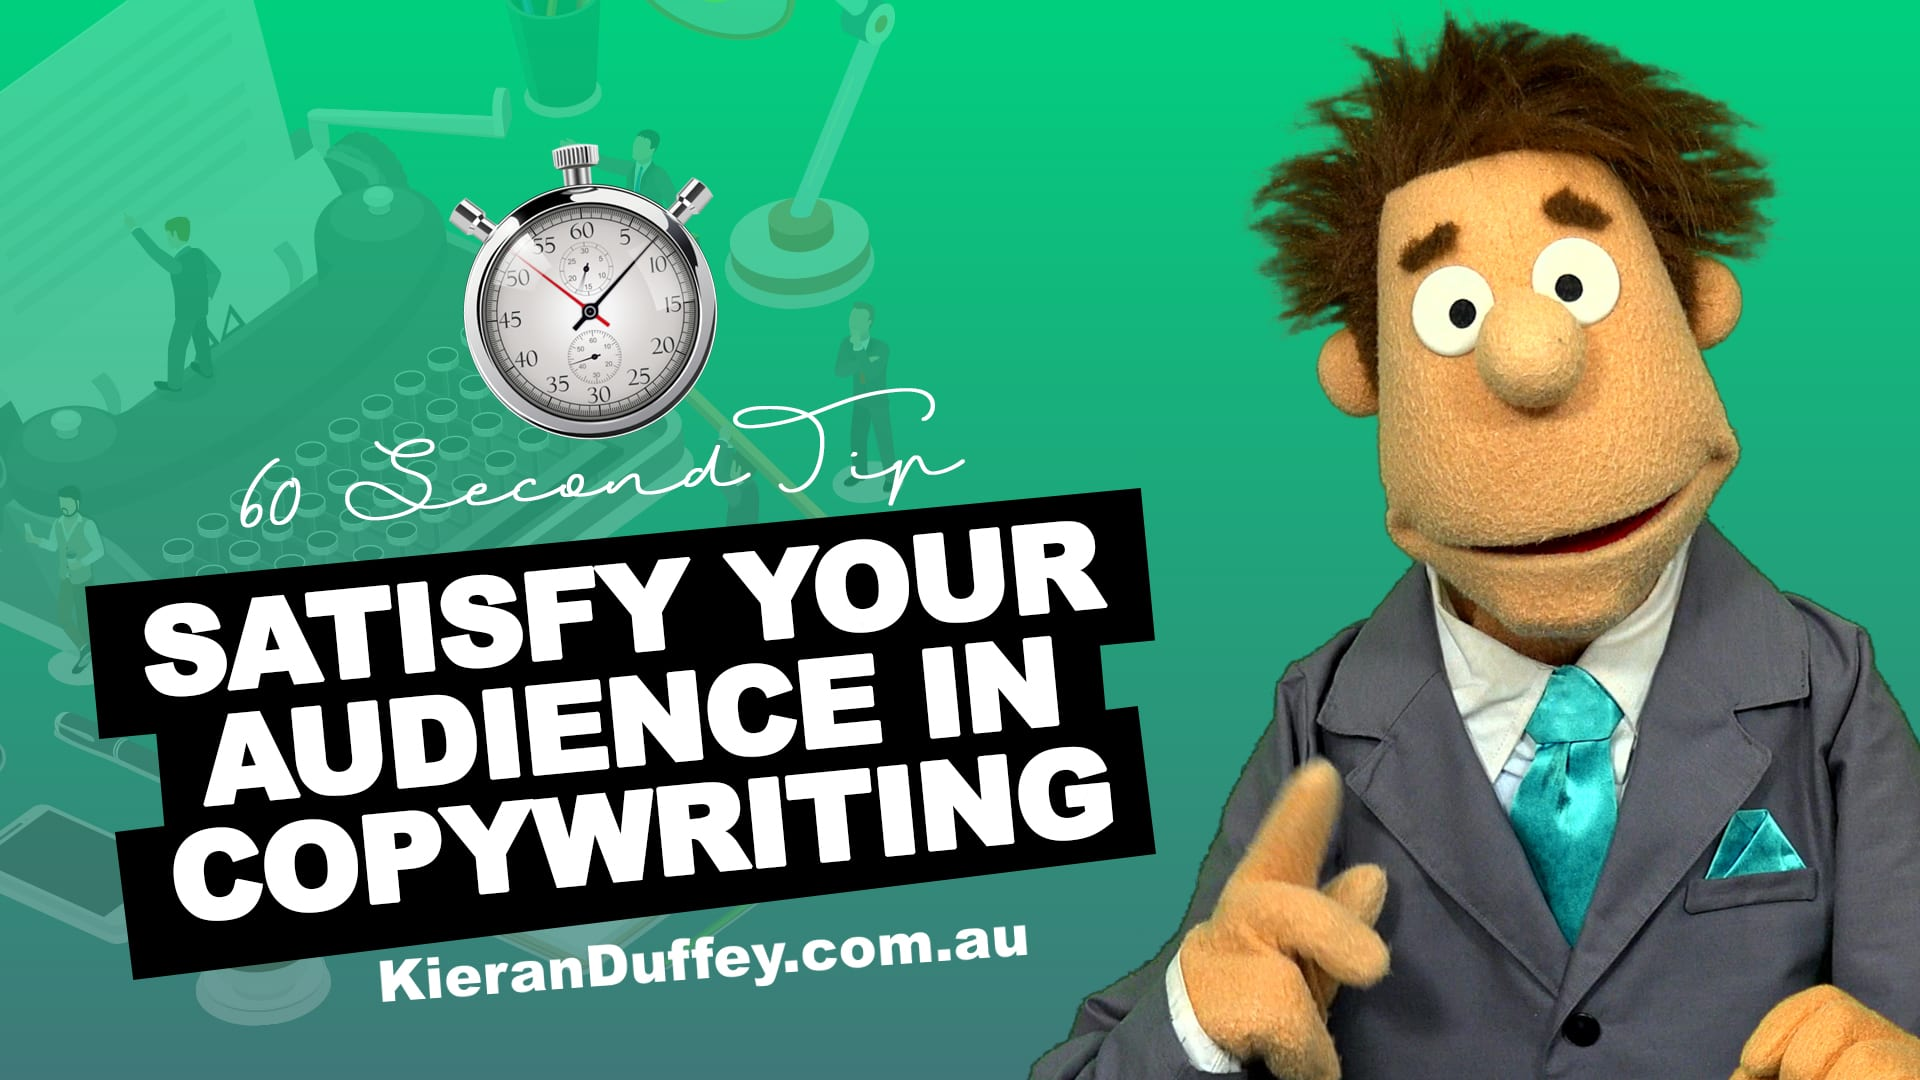 Video explaining importance of satisfying your audience in copywriting